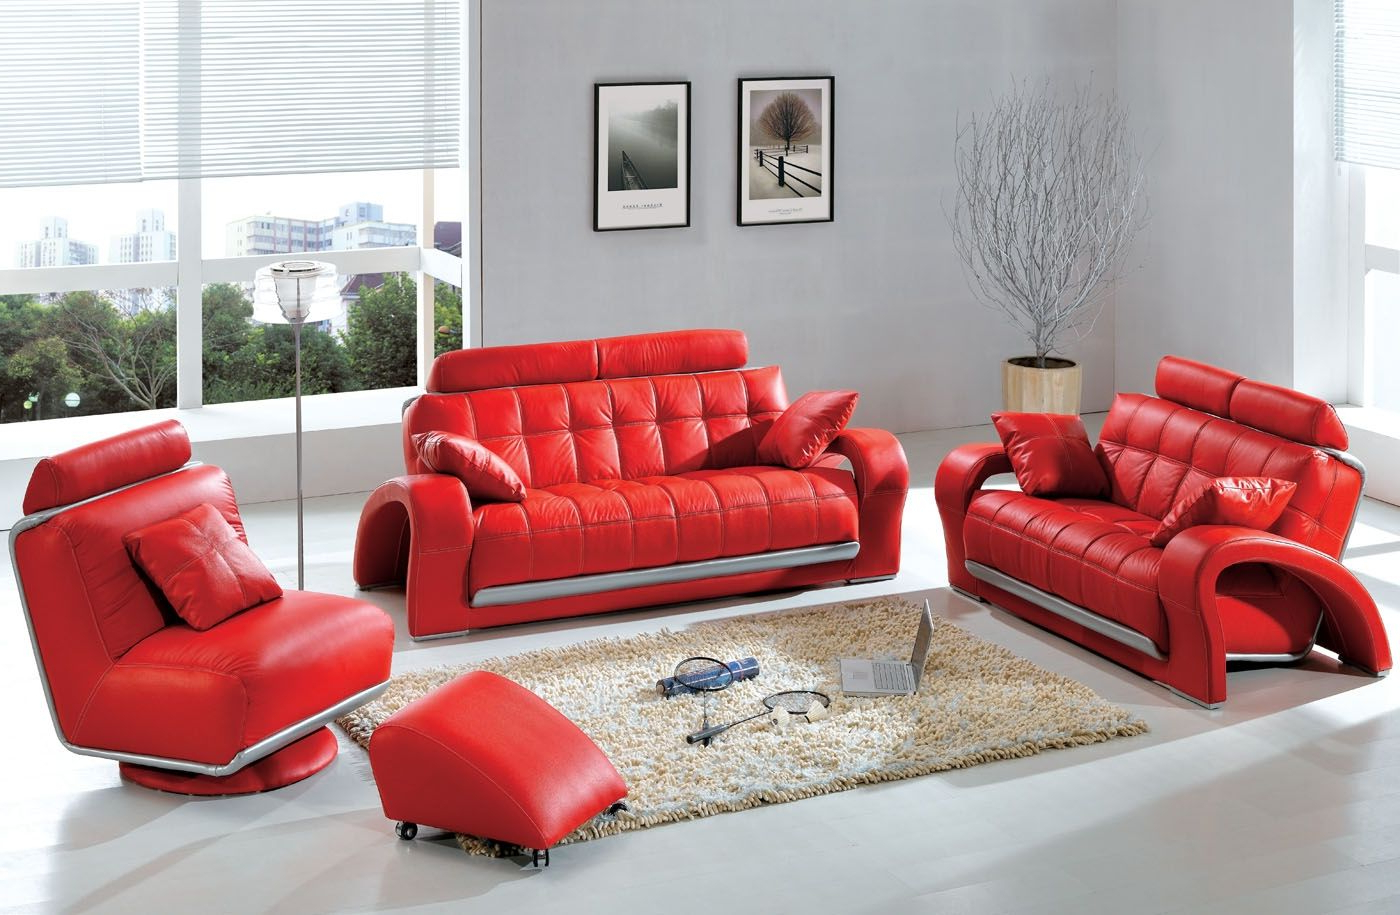 Red Sofas And Chairs Within Well Known Modern & Contemporary Leather Sofa & Sectional Sets (View 16 of 20)